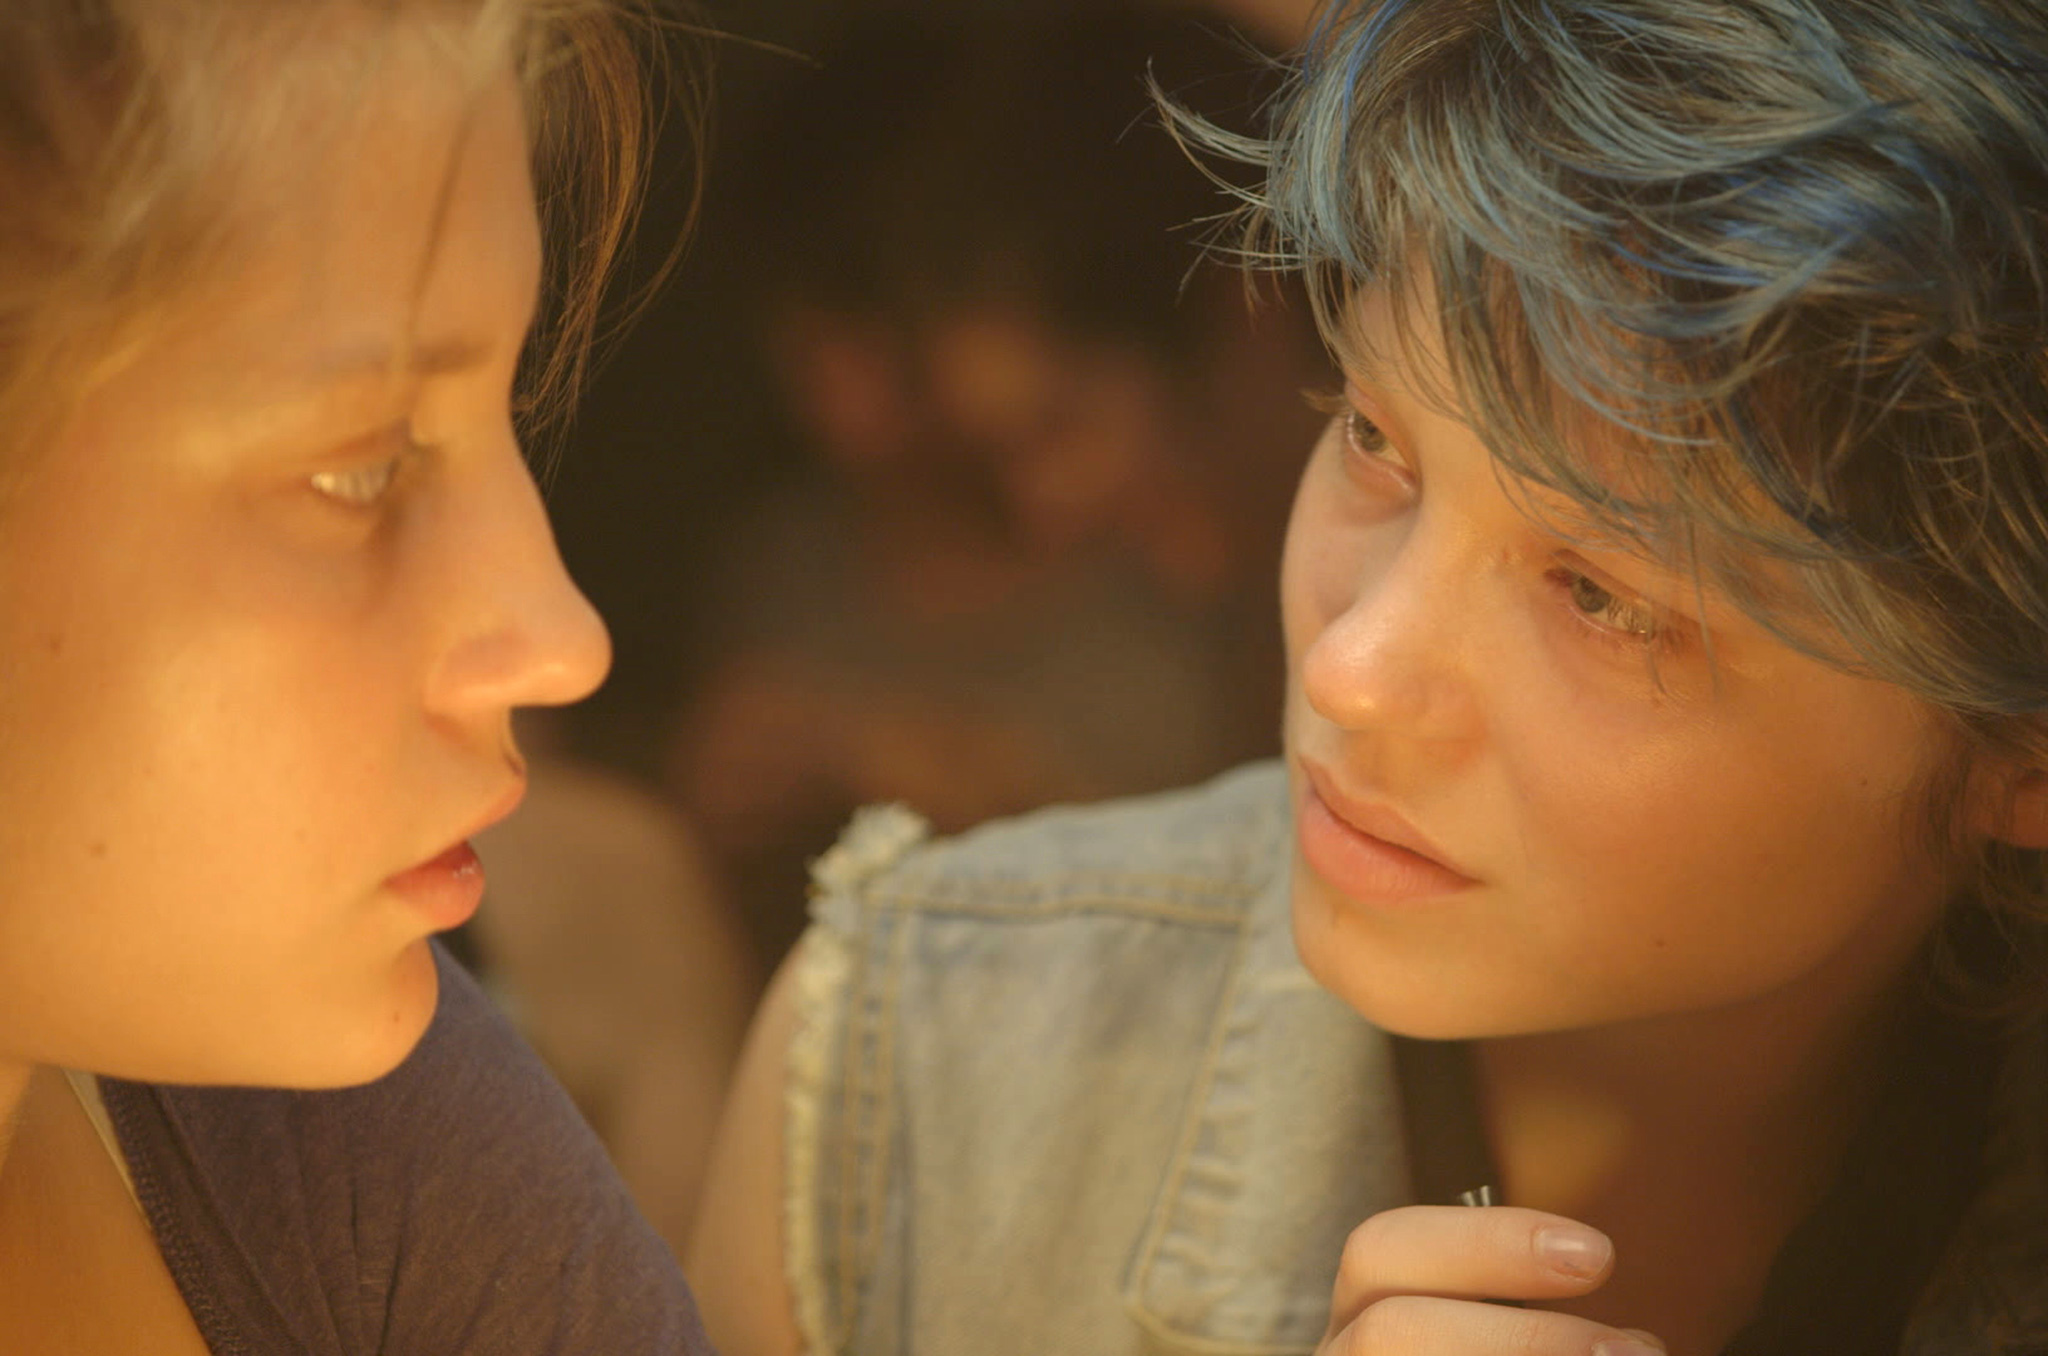 La Vie D'Adele - Blue is the Warmest Colour